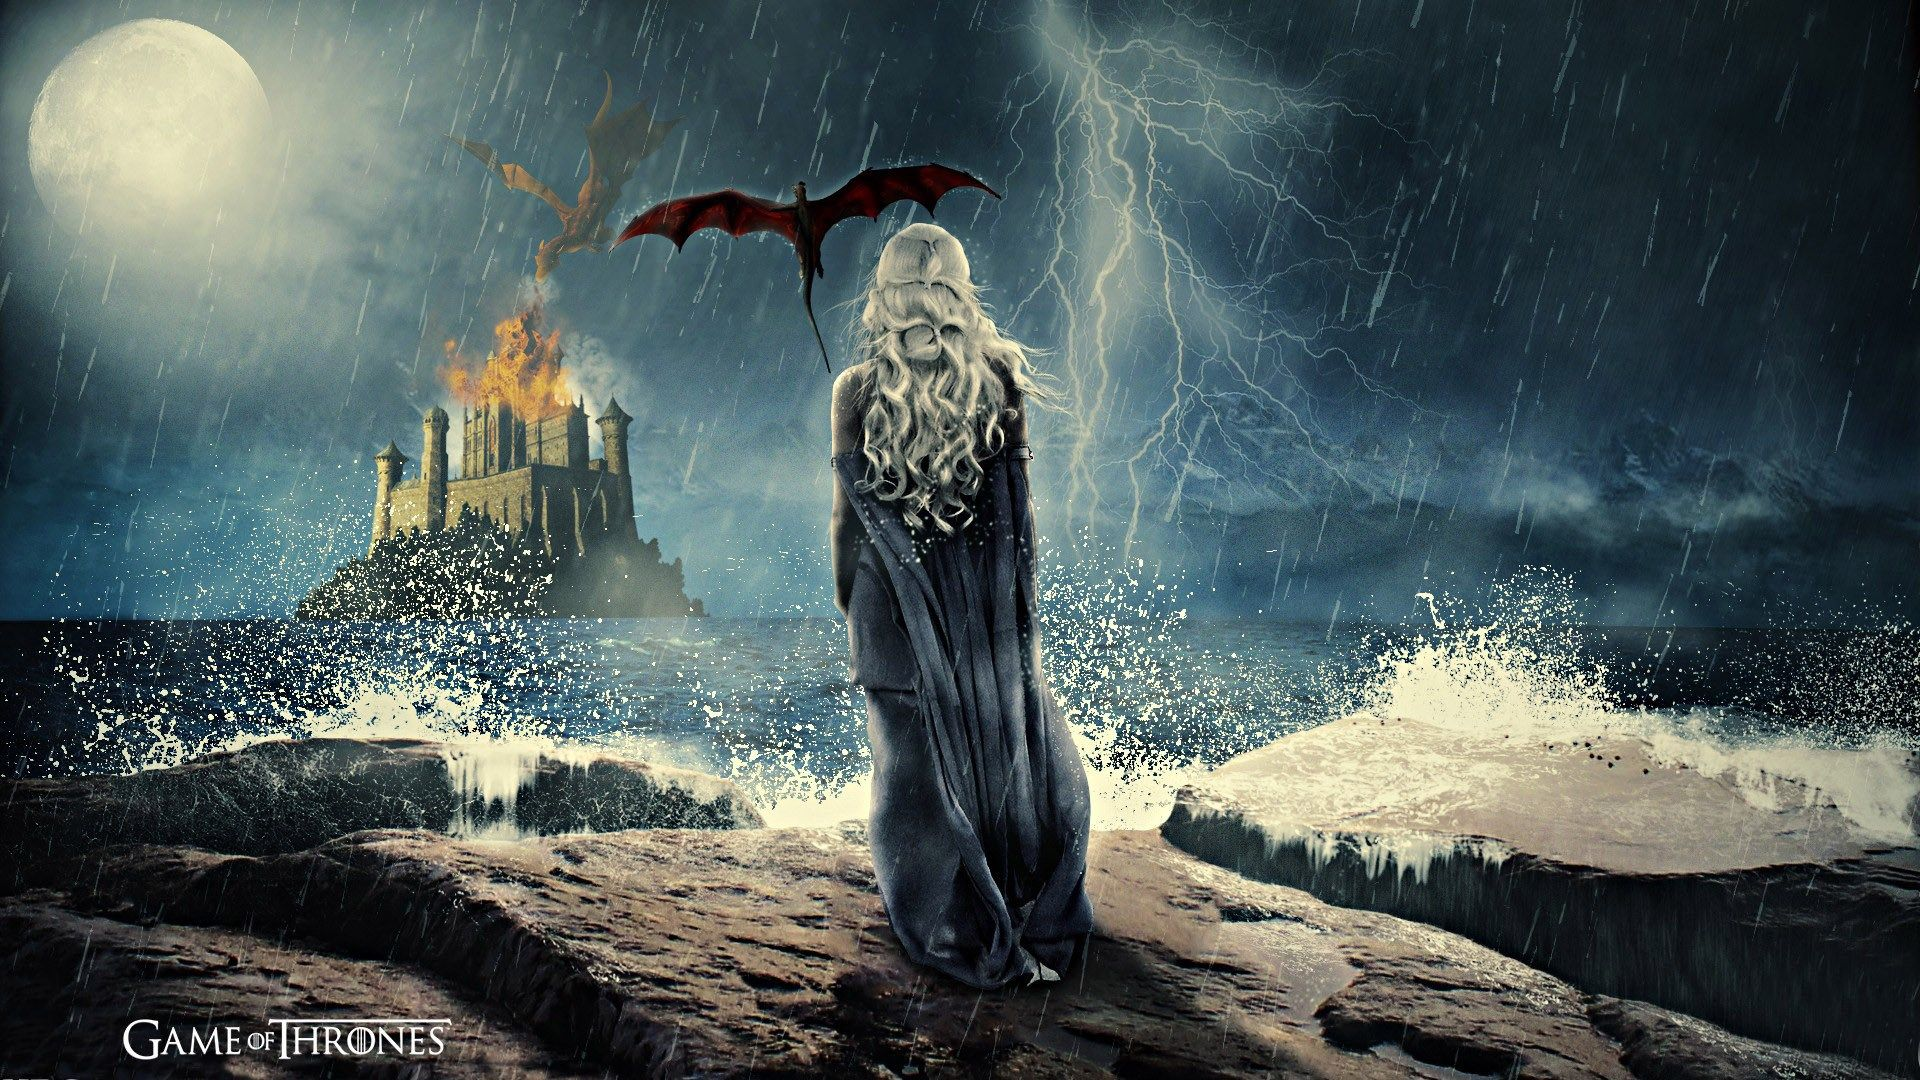 Game Of Thrones Computer Desktop Backgrounds Game Of Thrones Category Game Of Thrones Artwork Daenerys Targaryen Painting Art